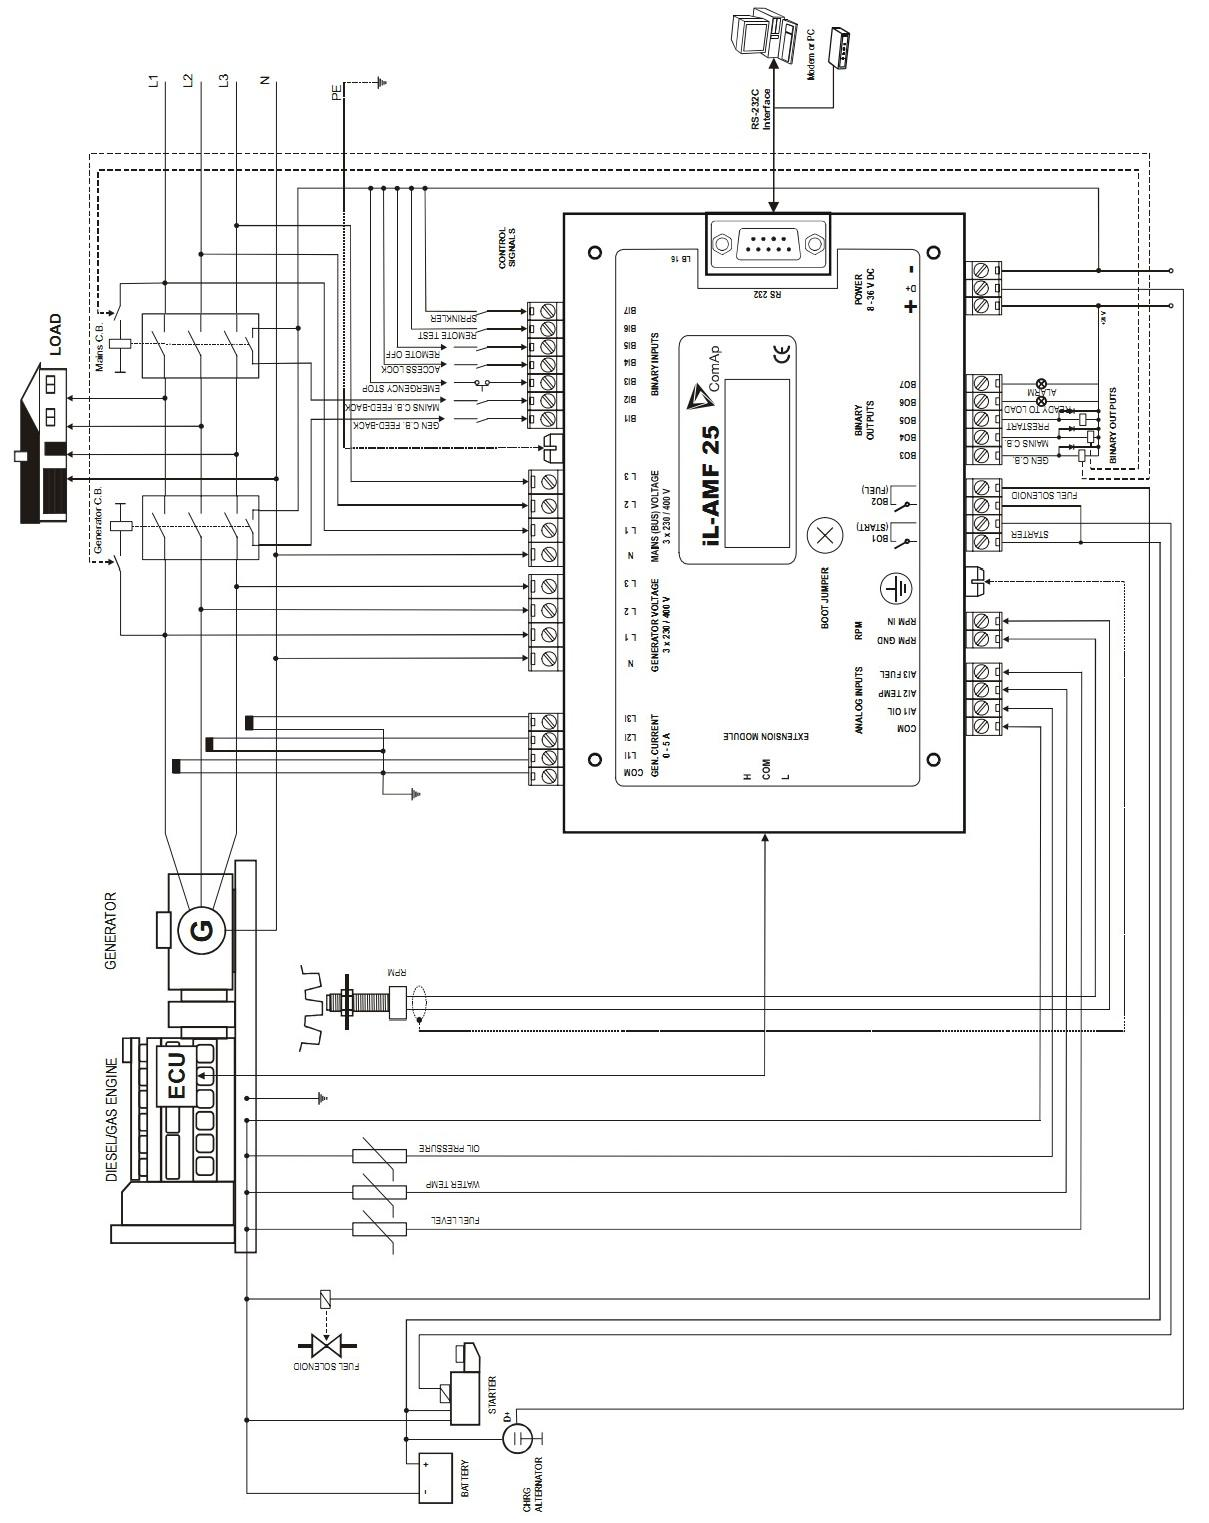 avr as440 wiring diagram permanent electron co.,ltd,avr,sx440,sx460,r448,r230 ... avr generator wiring diagram